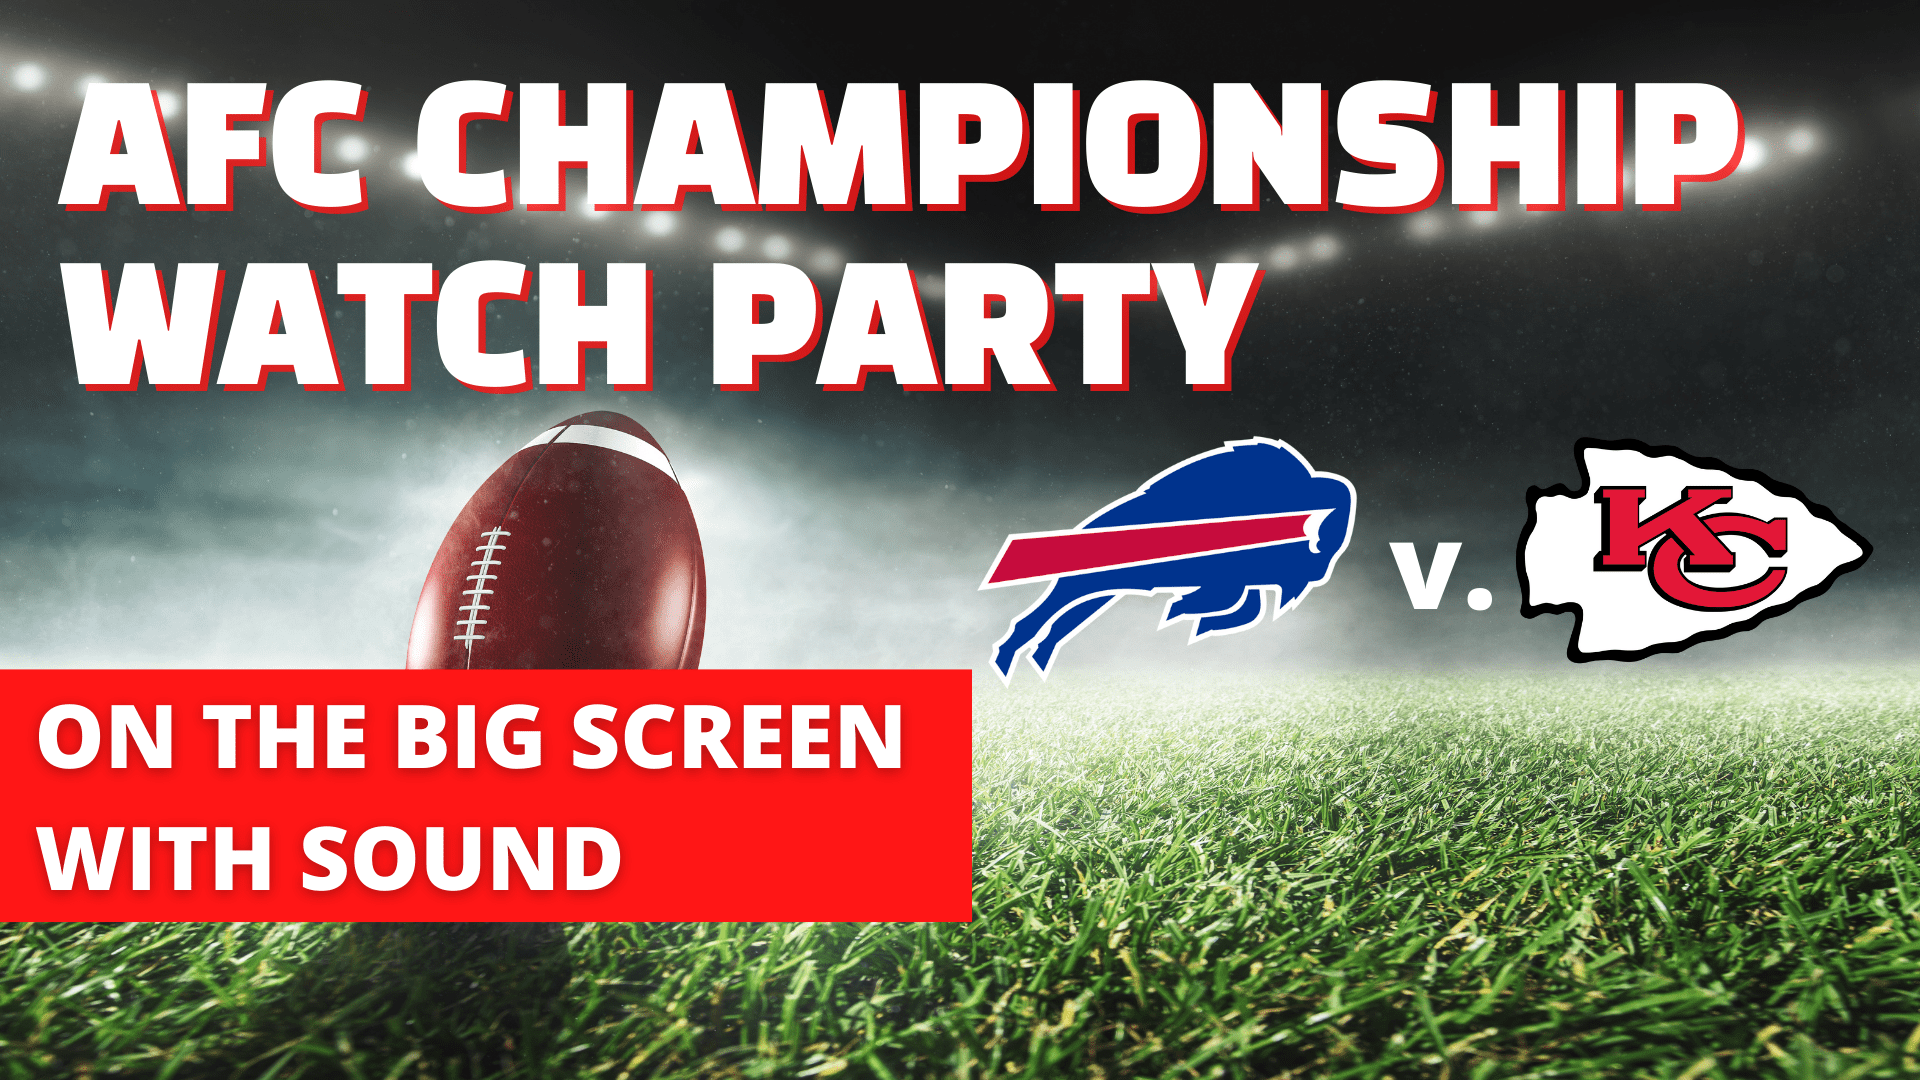 AFC Championship Watch Party - hero